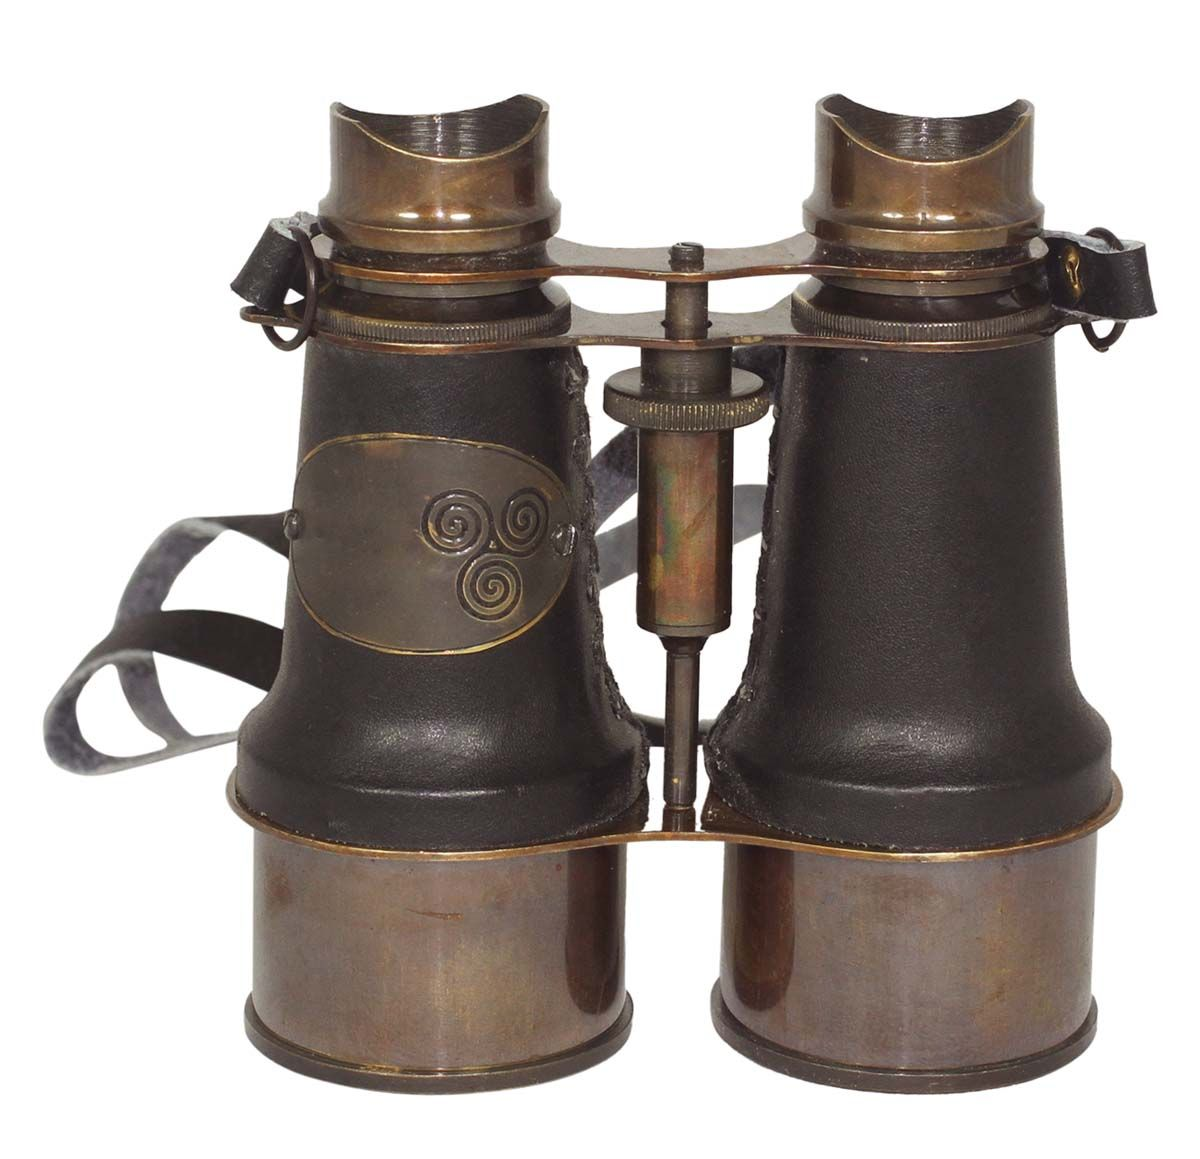 Nautical Brass Vintage Binocular With Leather Box Collectible Decor Great Gift